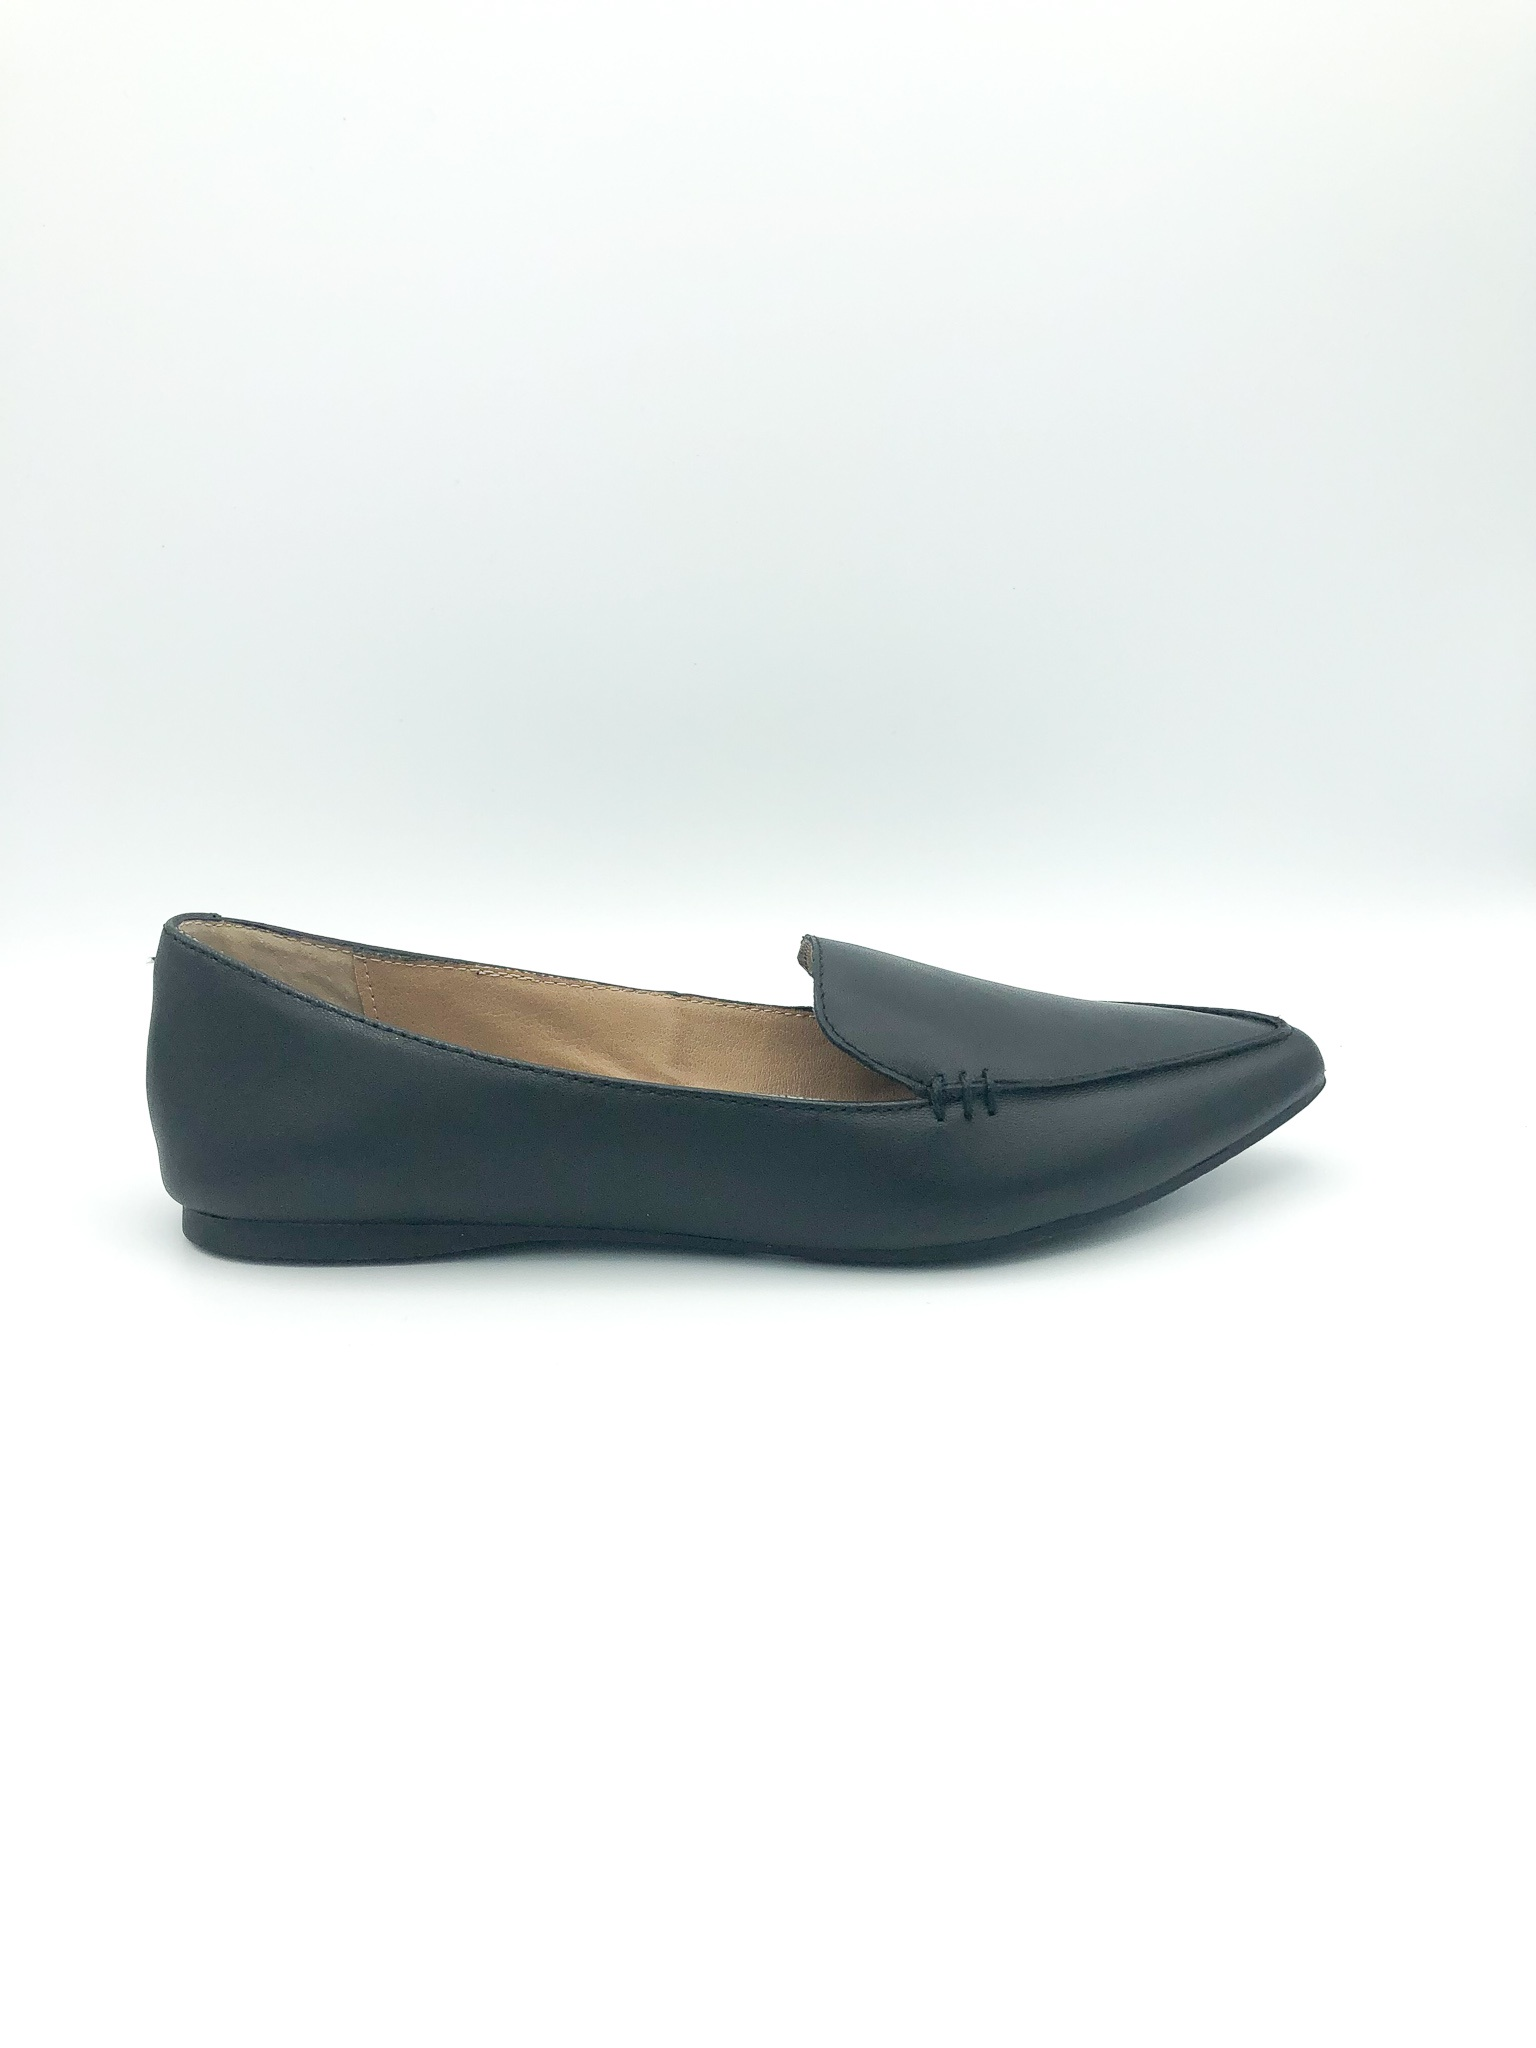 STEVE MADDEN - FEATHER IN BLACK LEATHER